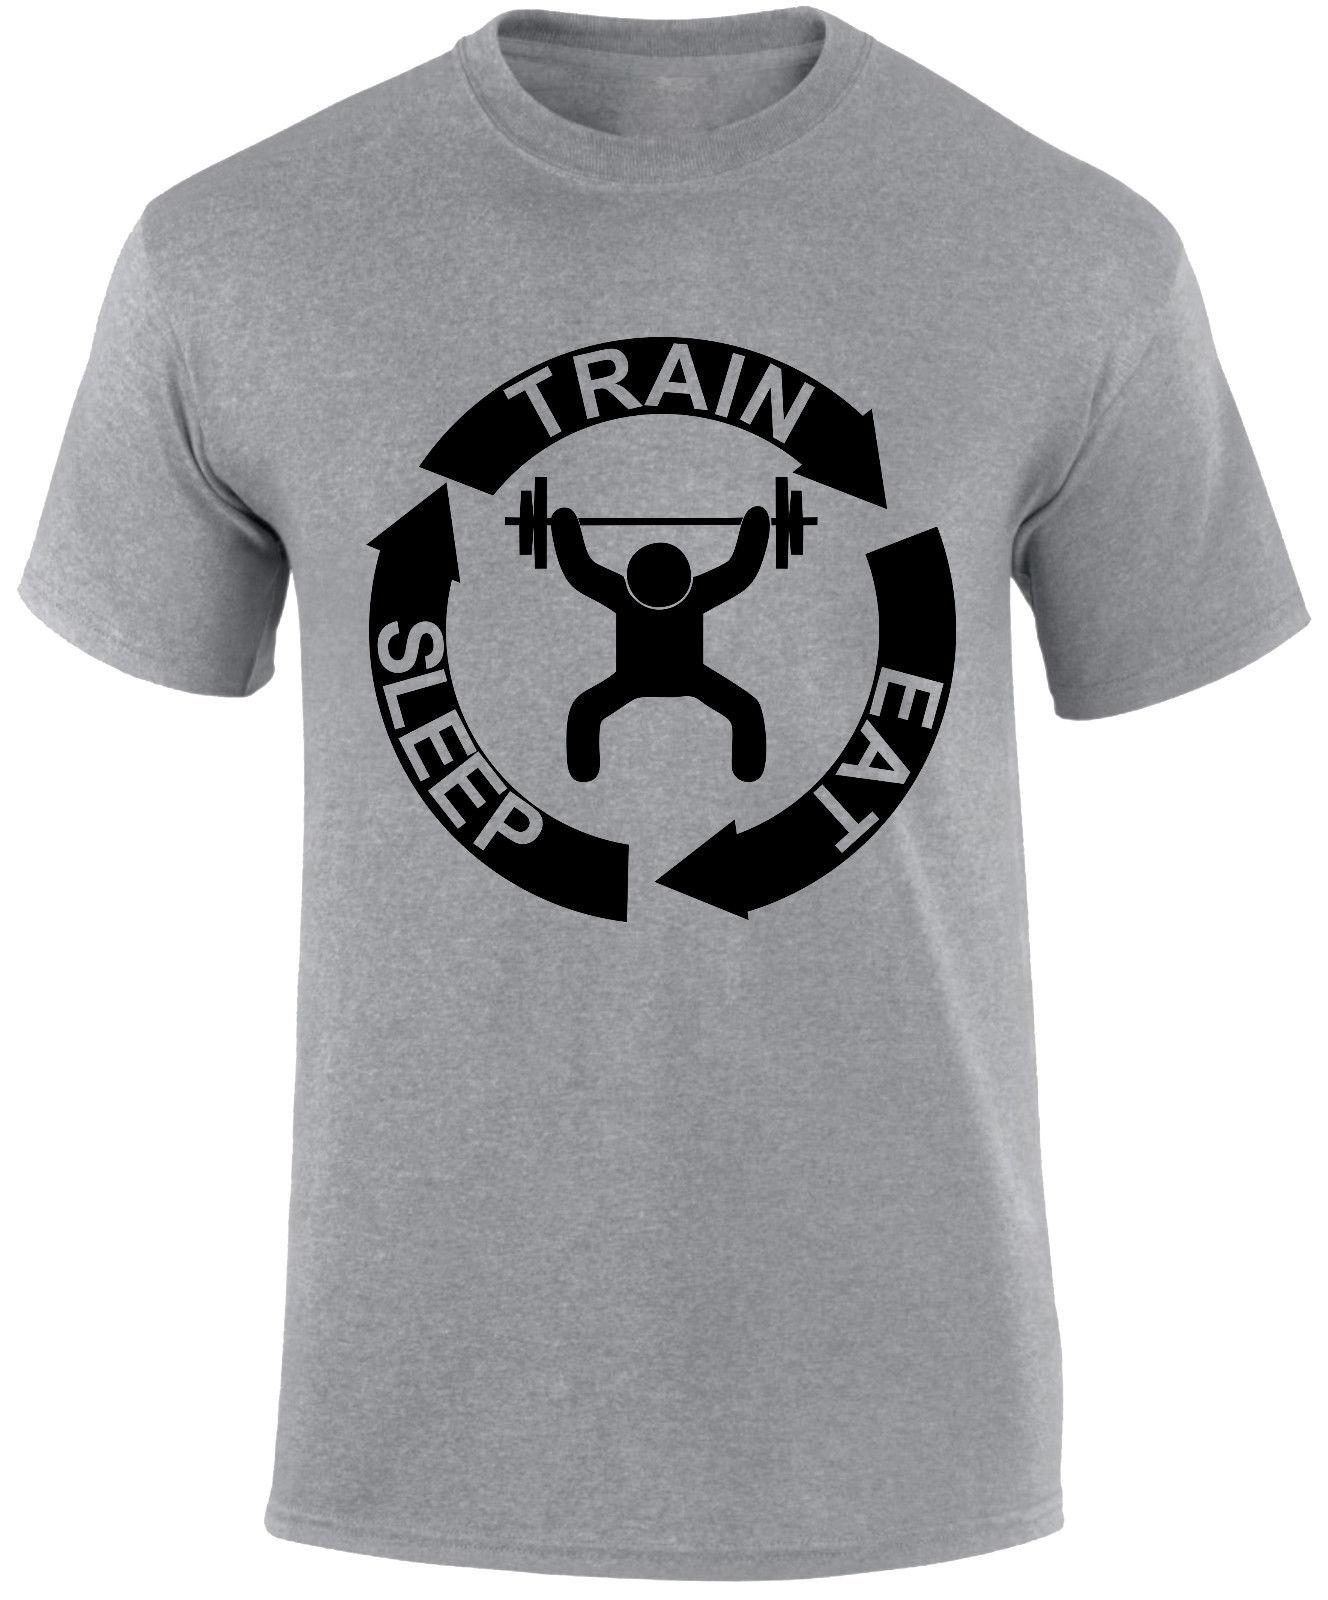 76dc2294 Details Zu Train Sleep Eat Cycle Workout Gym Fitness Sports Crossfit Fun  Slogan Men T Shirt Funny Unisex Tee Shirt And Tshirt Create Your Own T  Shirt Design ...